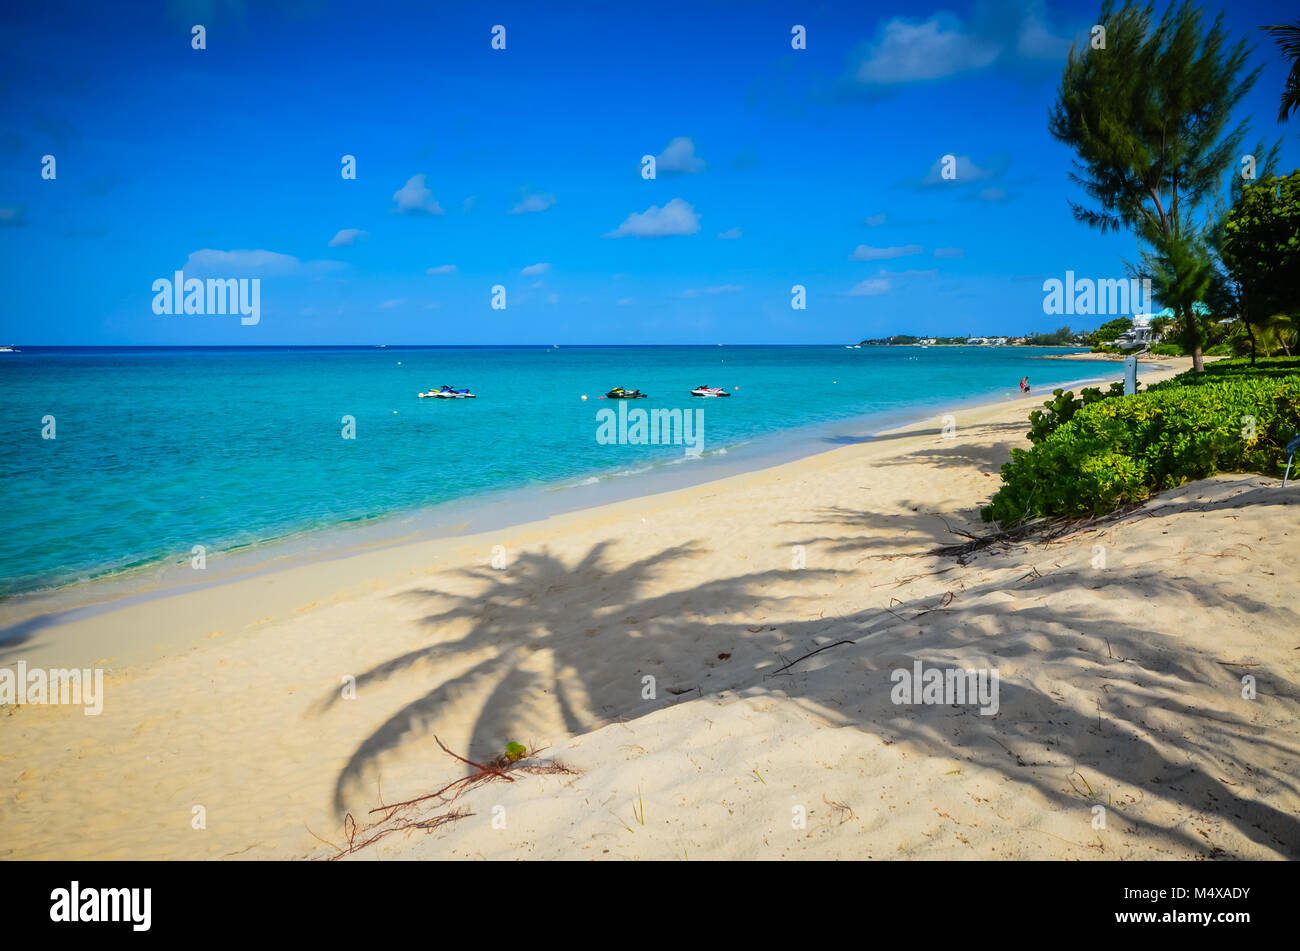 Palm tree shadow on white sand beach, deserted in early morning. - Stock Image